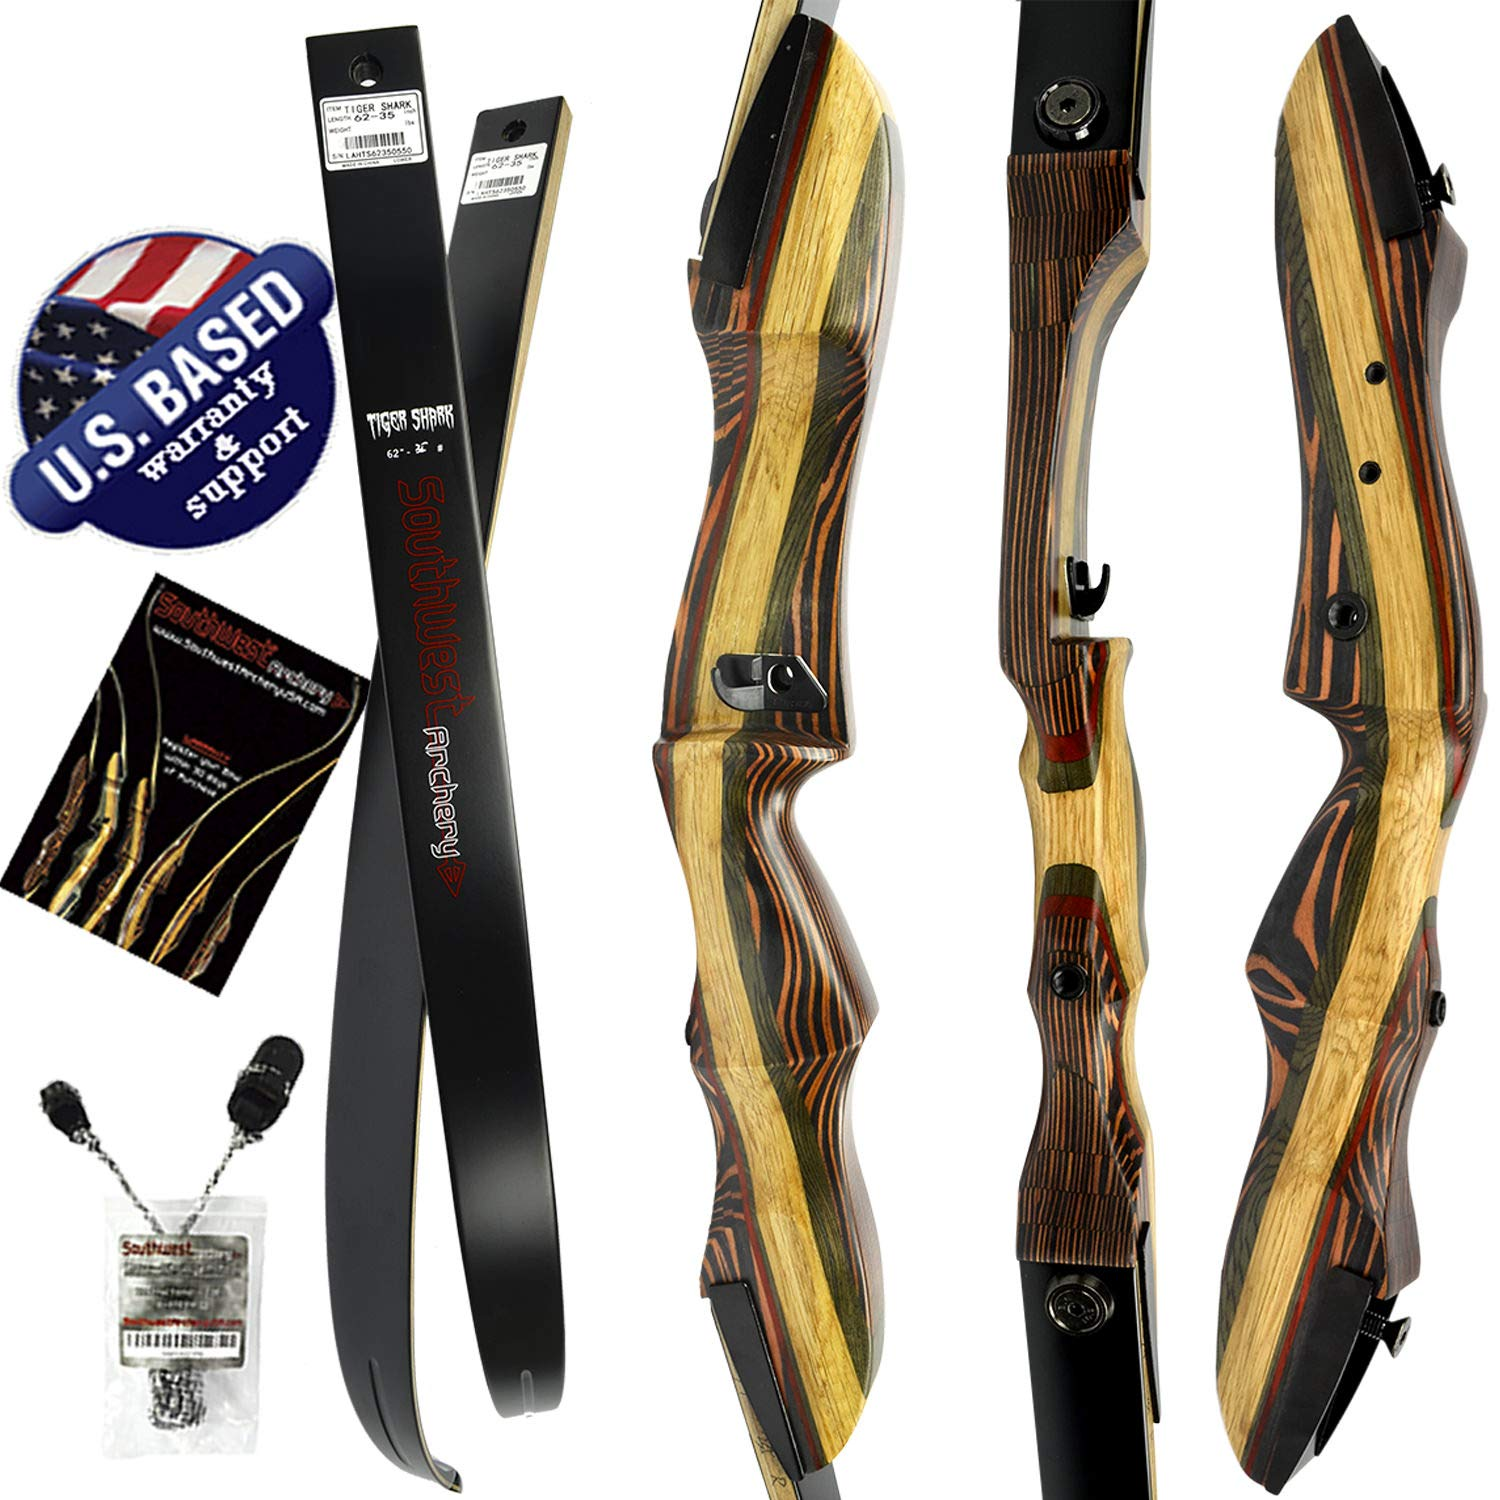 Southwest Archery Tigershark Takedown Recurve Bow - Standard, 25L W/Stringer